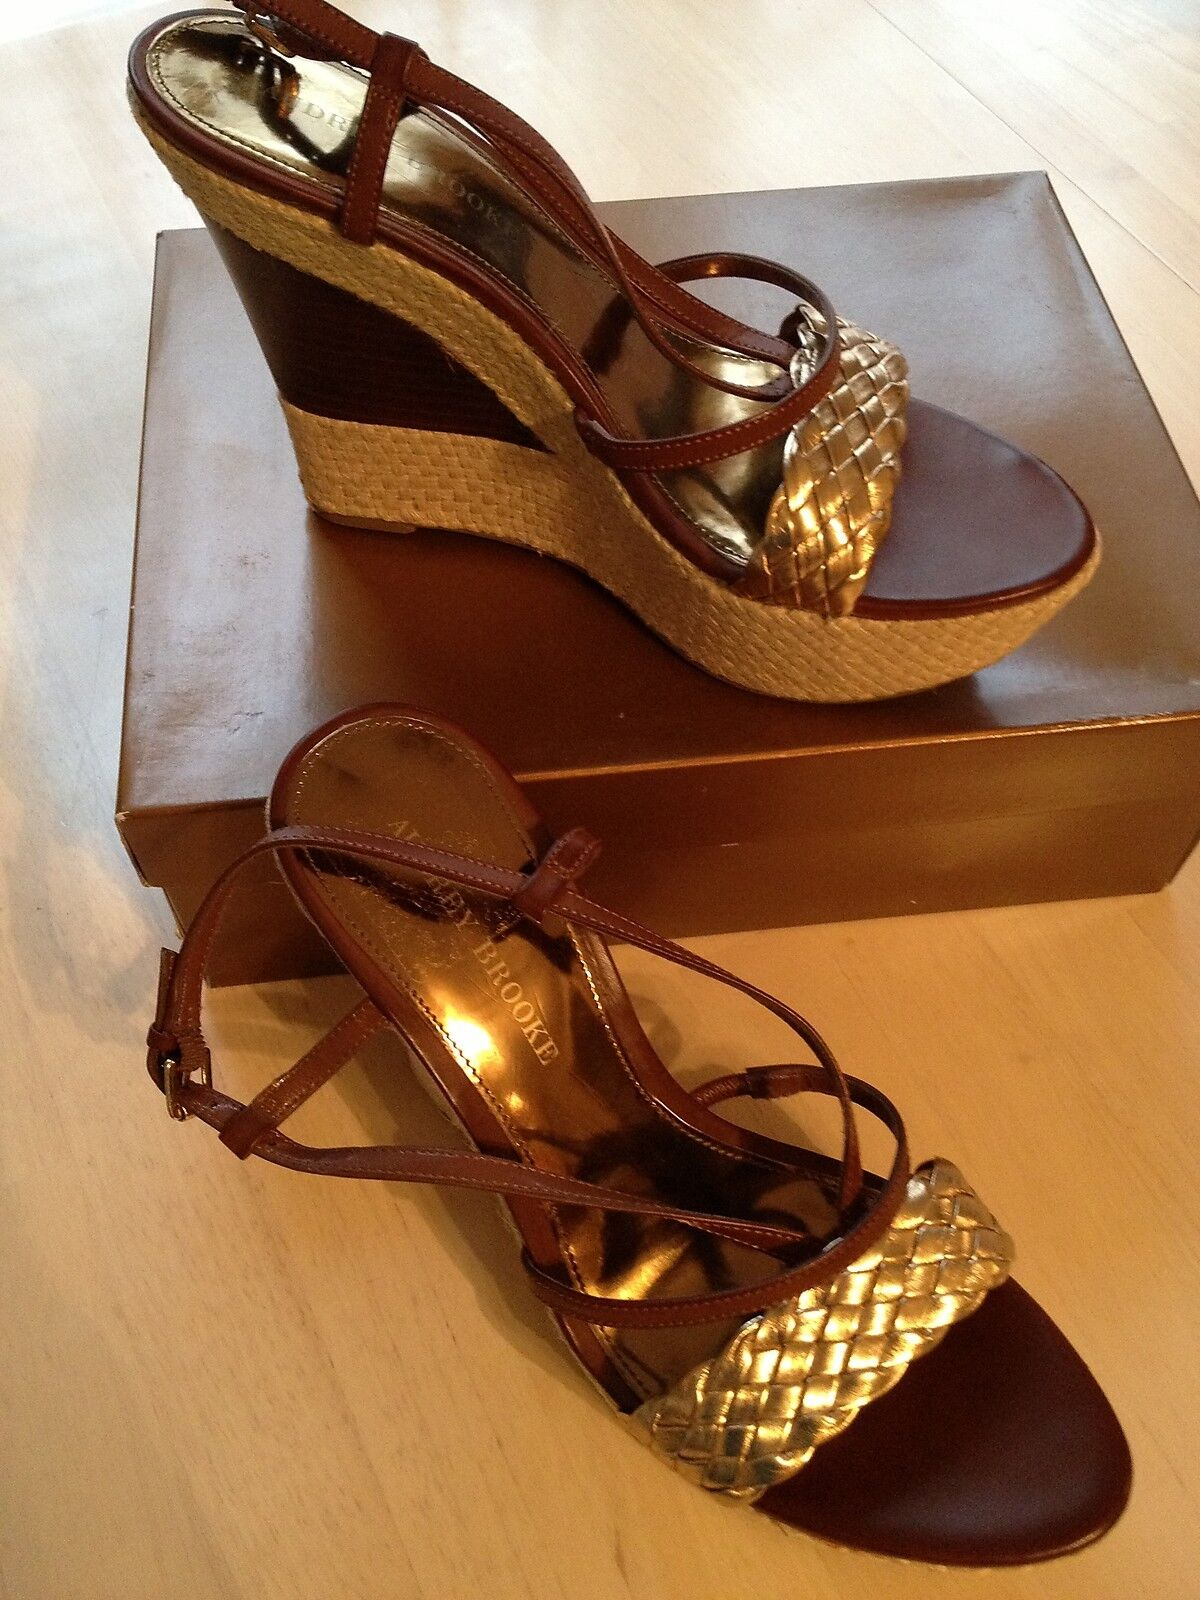 Audrey Brooke Women's shoes Shake Brown Wedge shoes Size 9.5 NWB